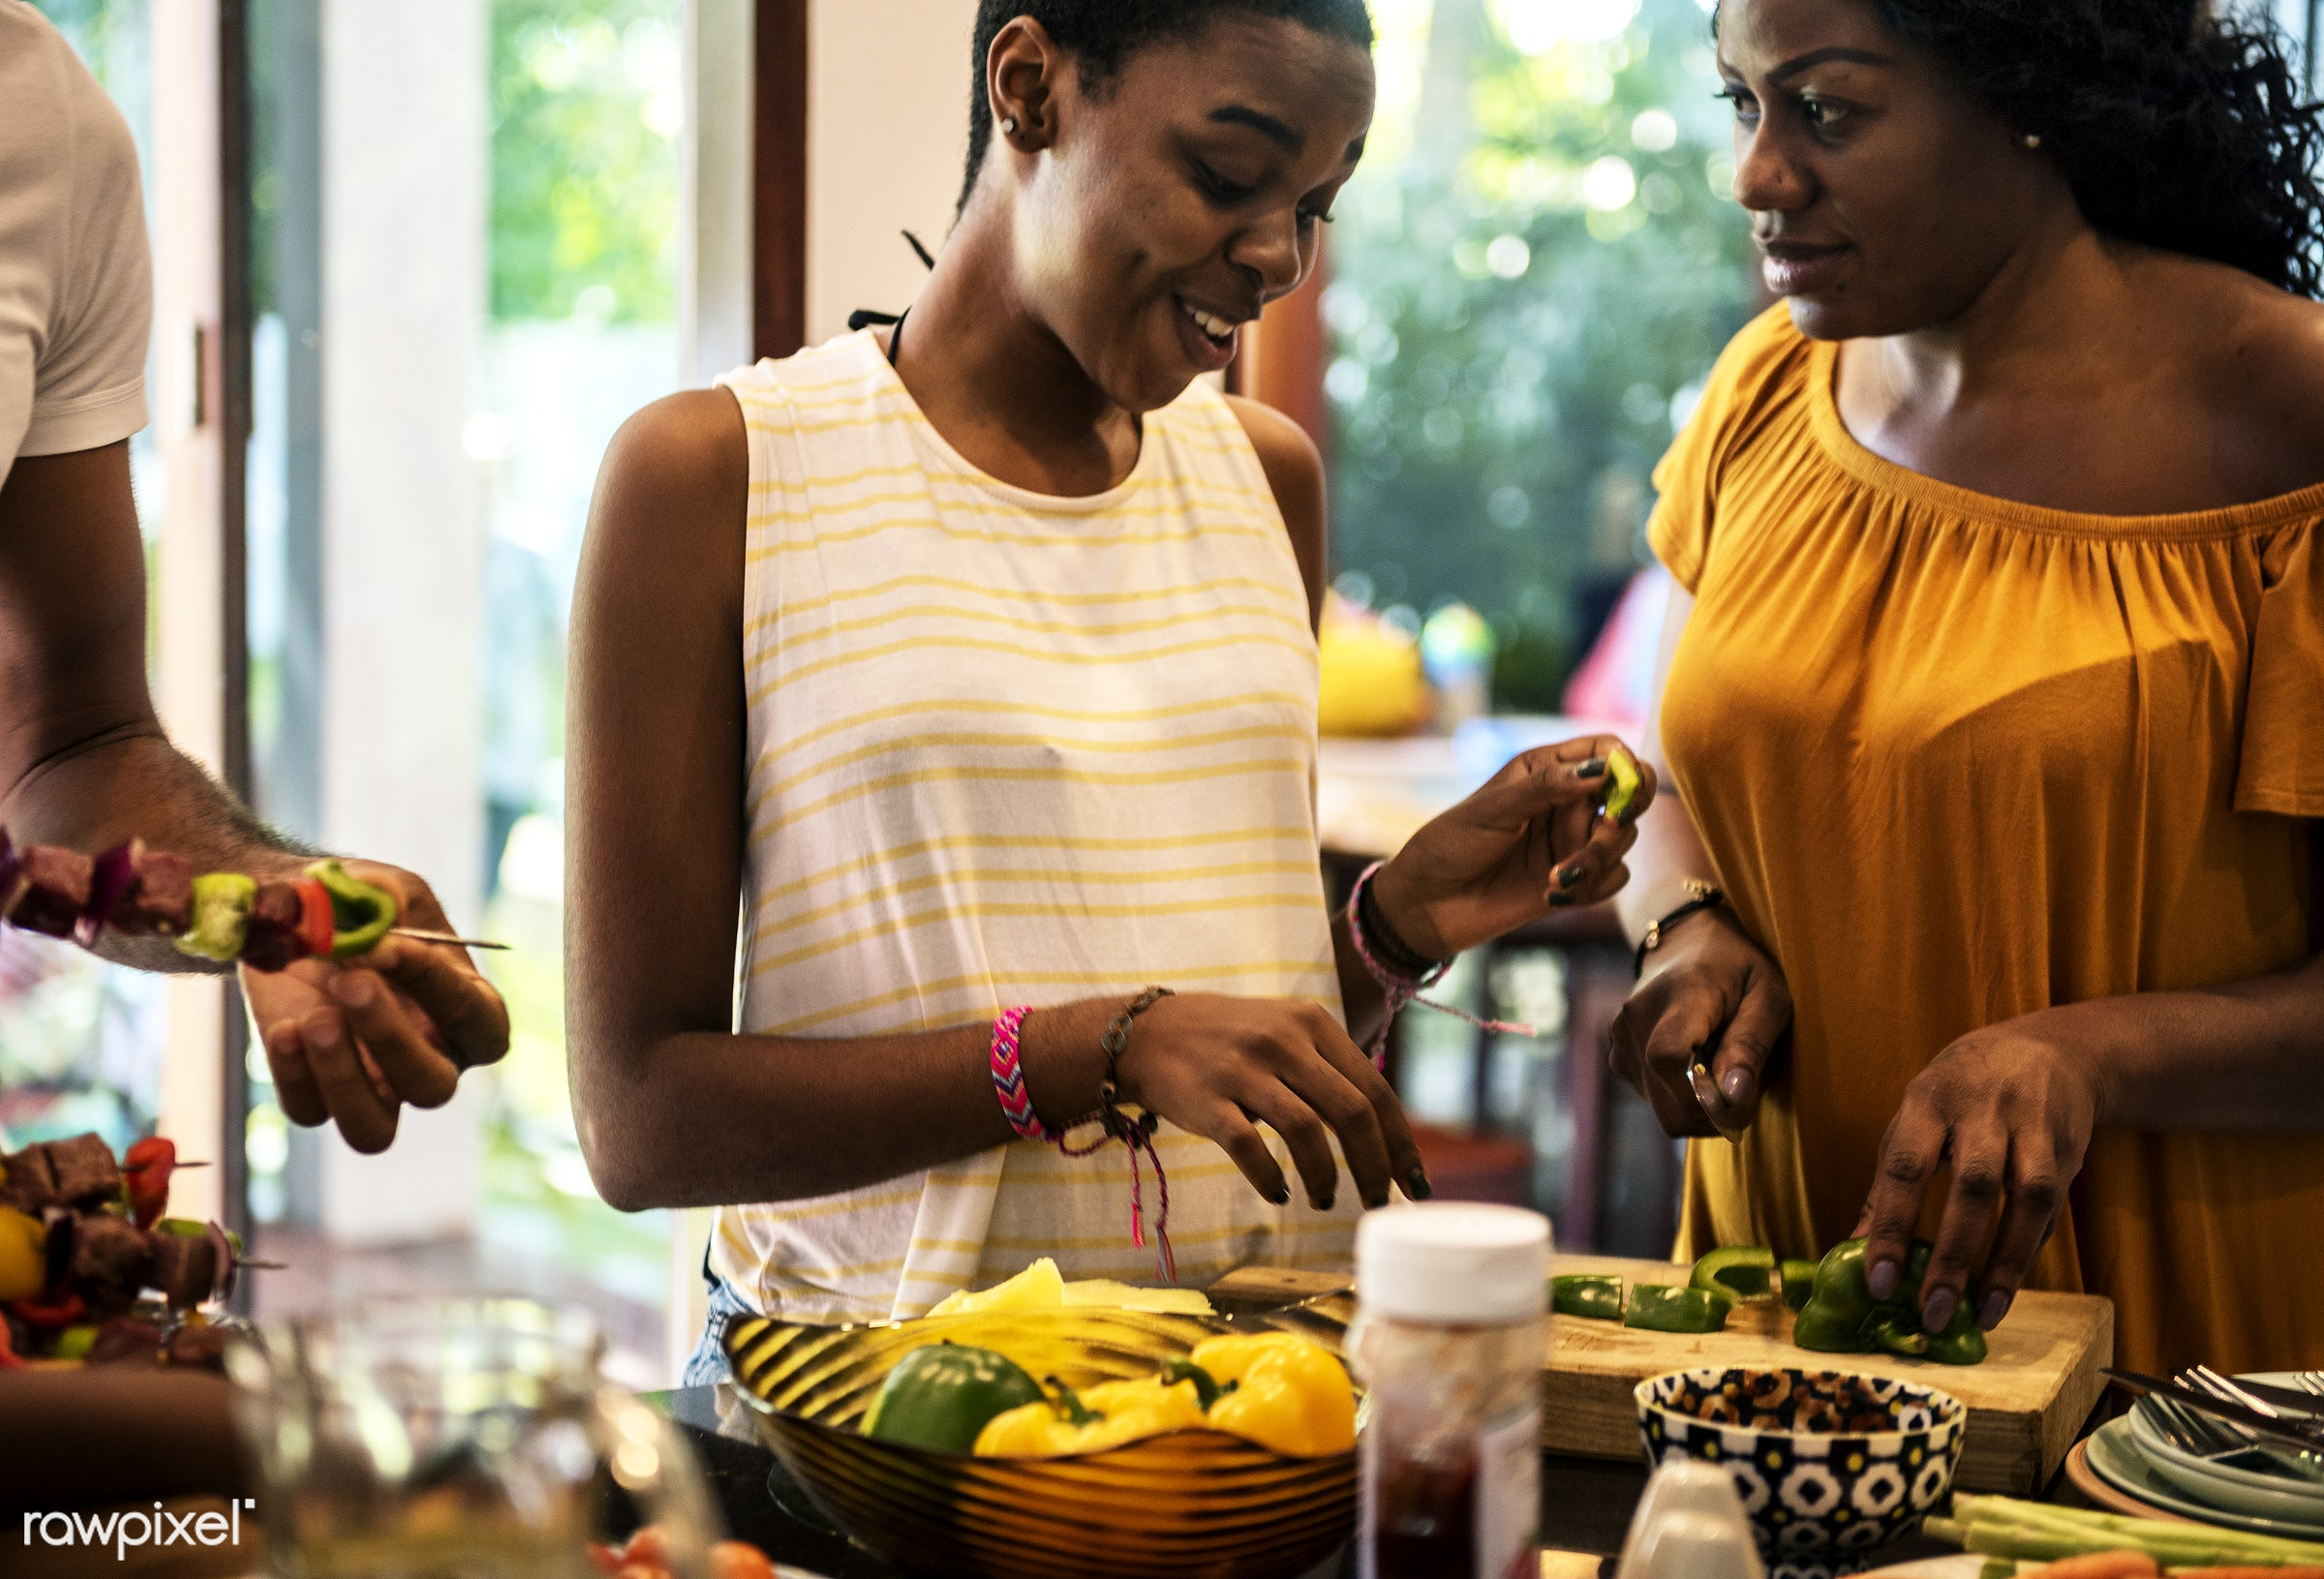 african descent, barbecue, bbq, casual, cheerful, cook, counter, diverse, enjoy, enjoyment, family, food, fruits, fun, group...